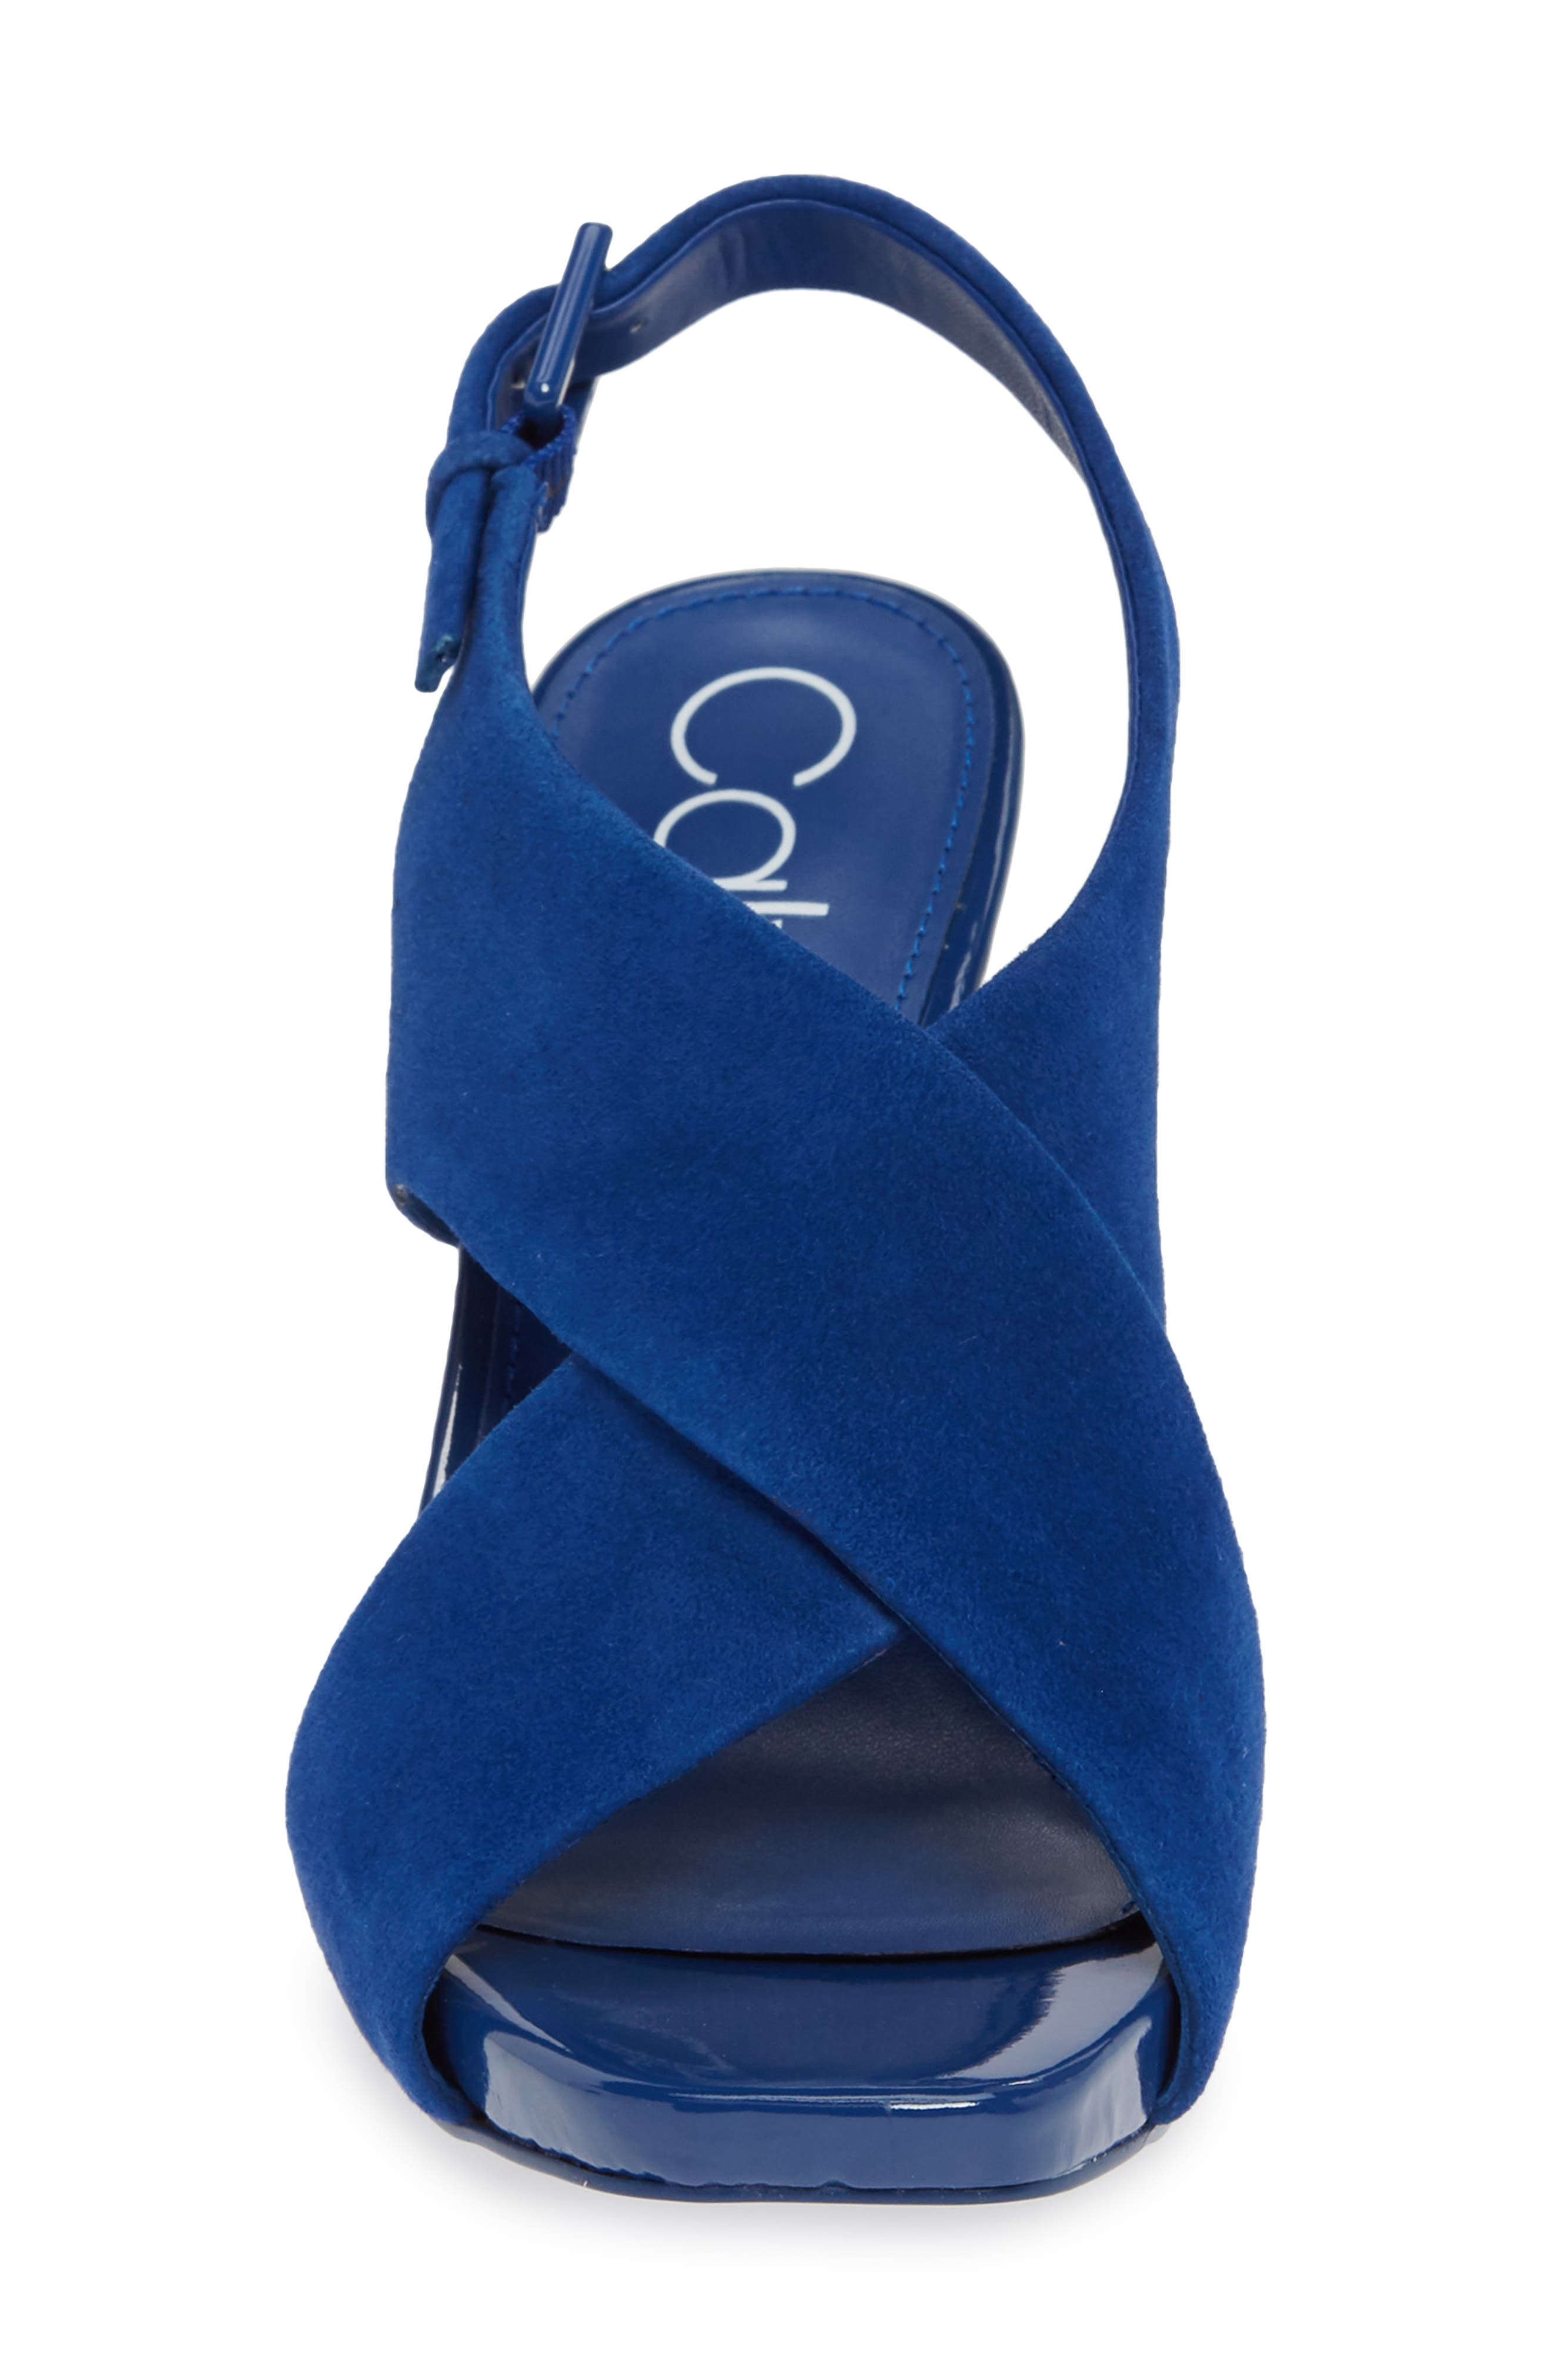 CALVIN KLEIN, Myra Cross Strap Sandal, Alternate thumbnail 4, color, ROYAL BLUE SUEDE